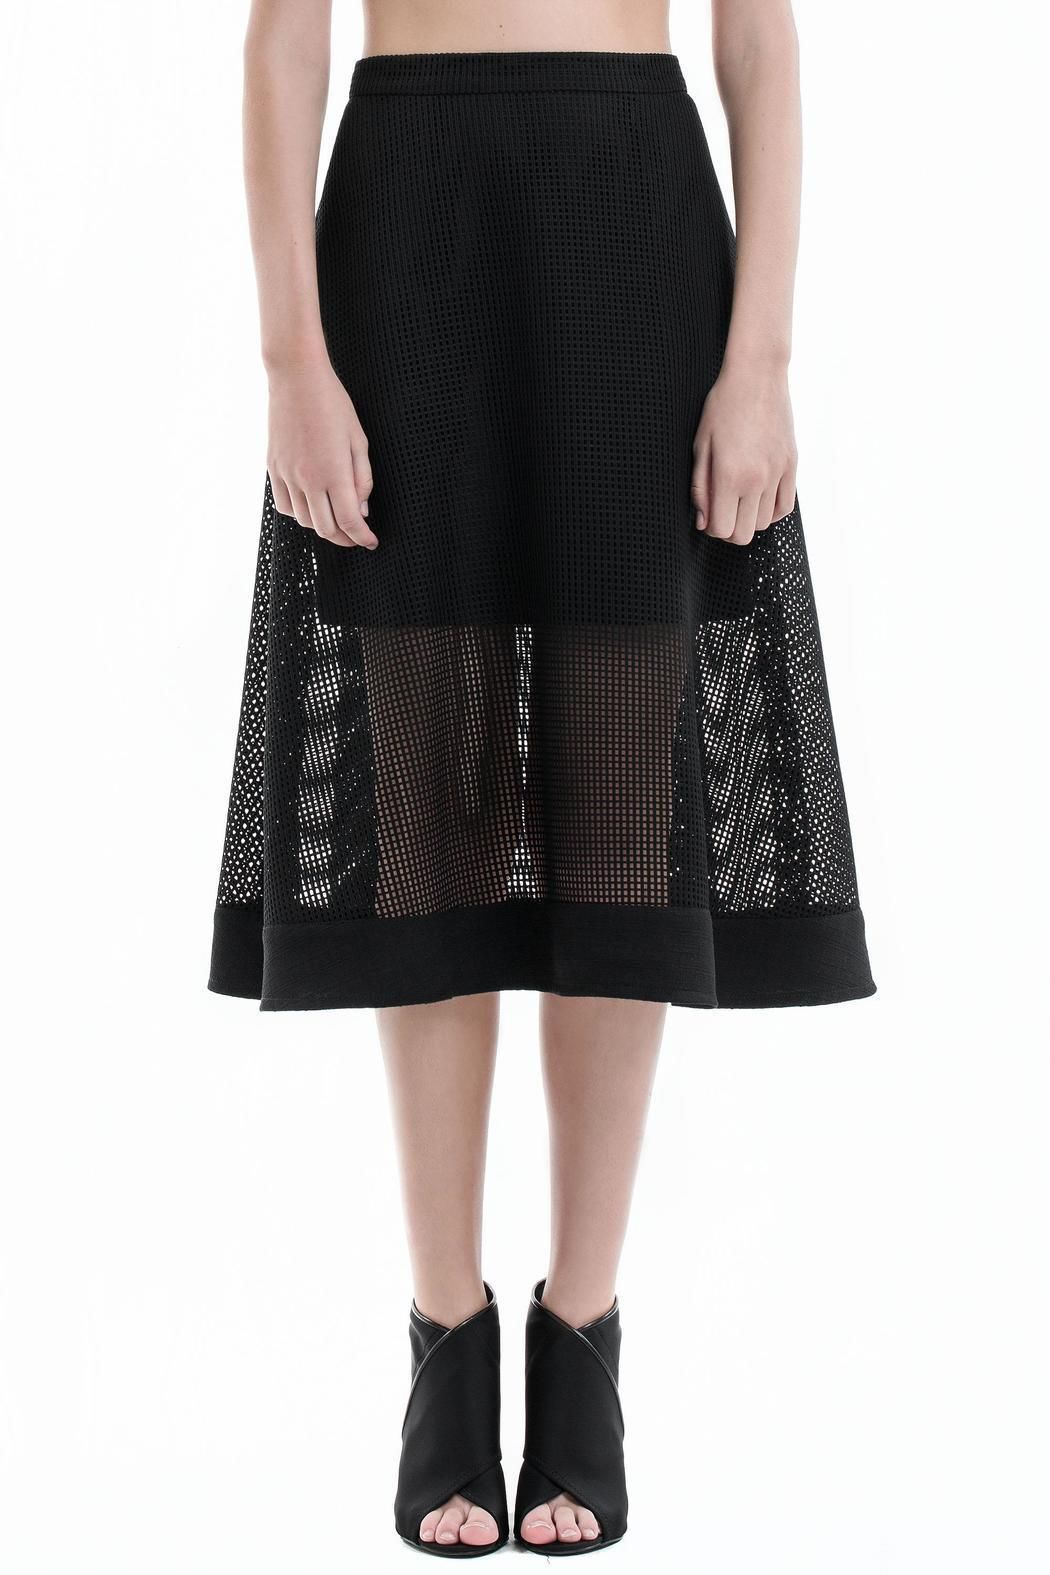 a6b001b8c4 Classic and ultra feminine this high waisted midi skirt is crafted from  fine Japanese lace,